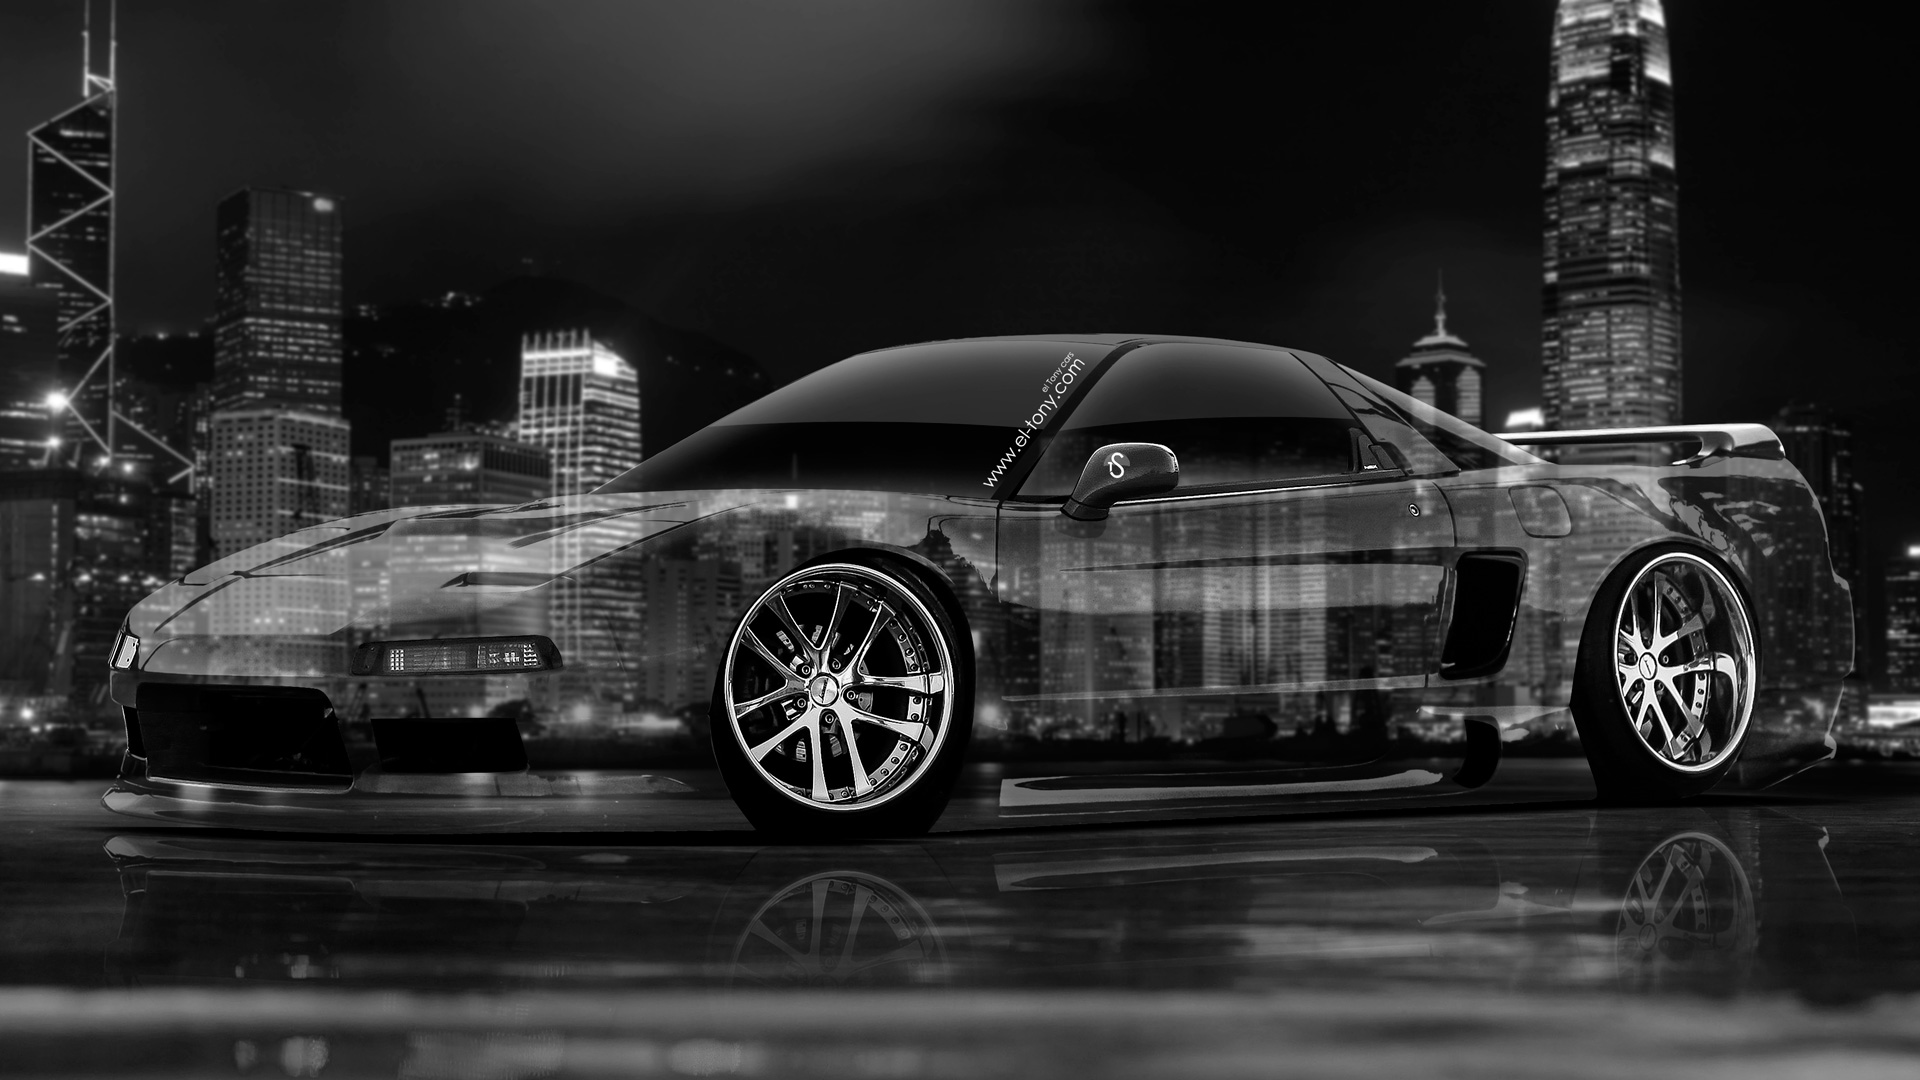 Amazing Honda NSX JDM Crystal City Car 2014